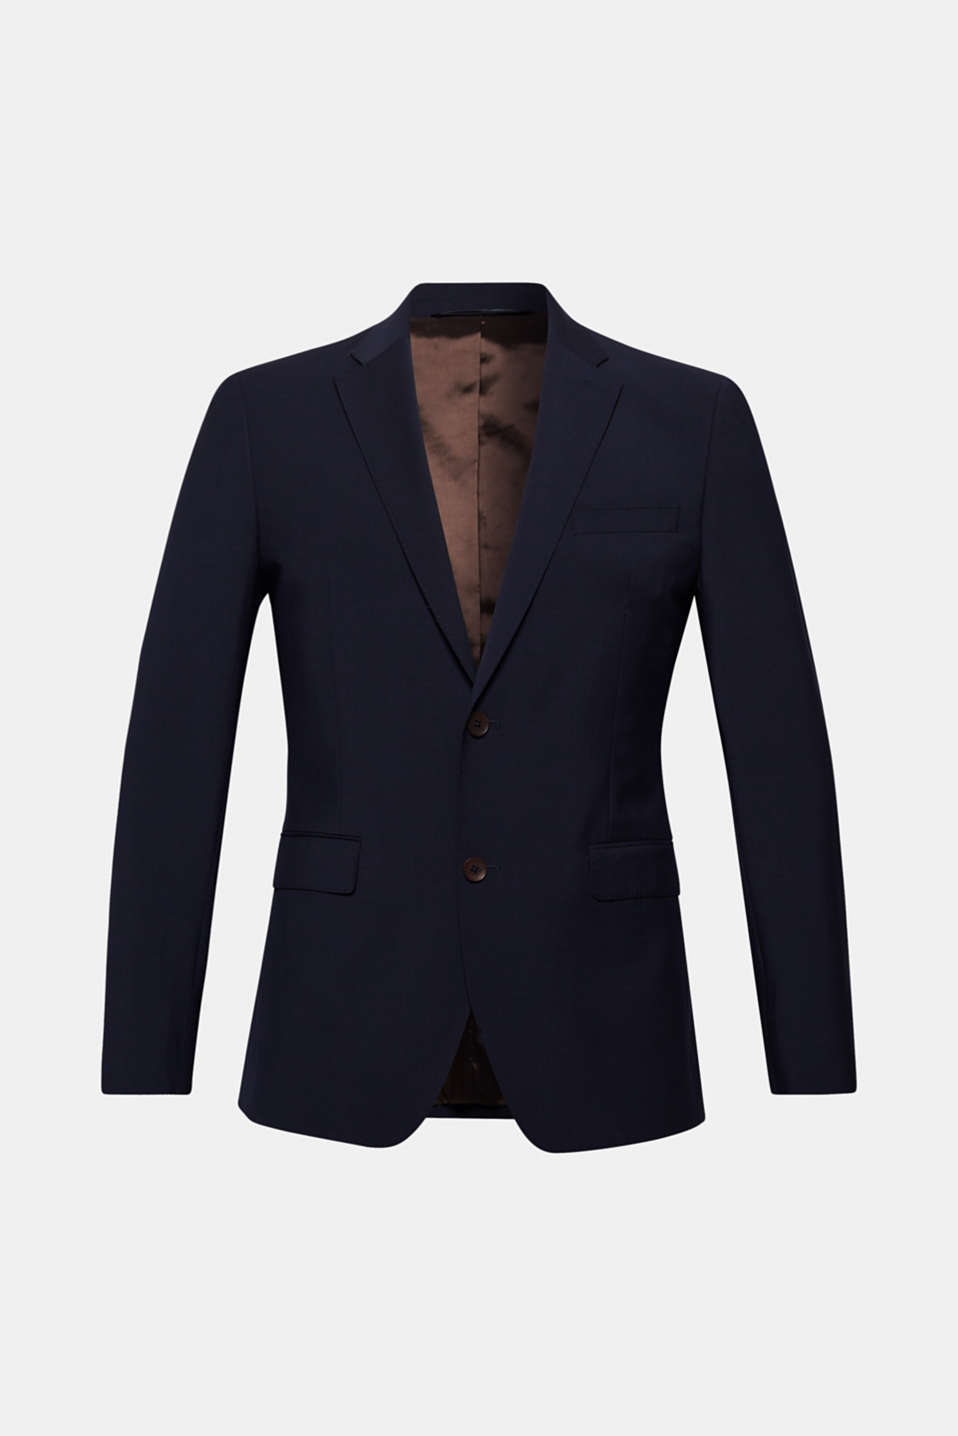 Active Suit: totally unrestricted movement and shape retention thanks to the bi-elastic wool blend!